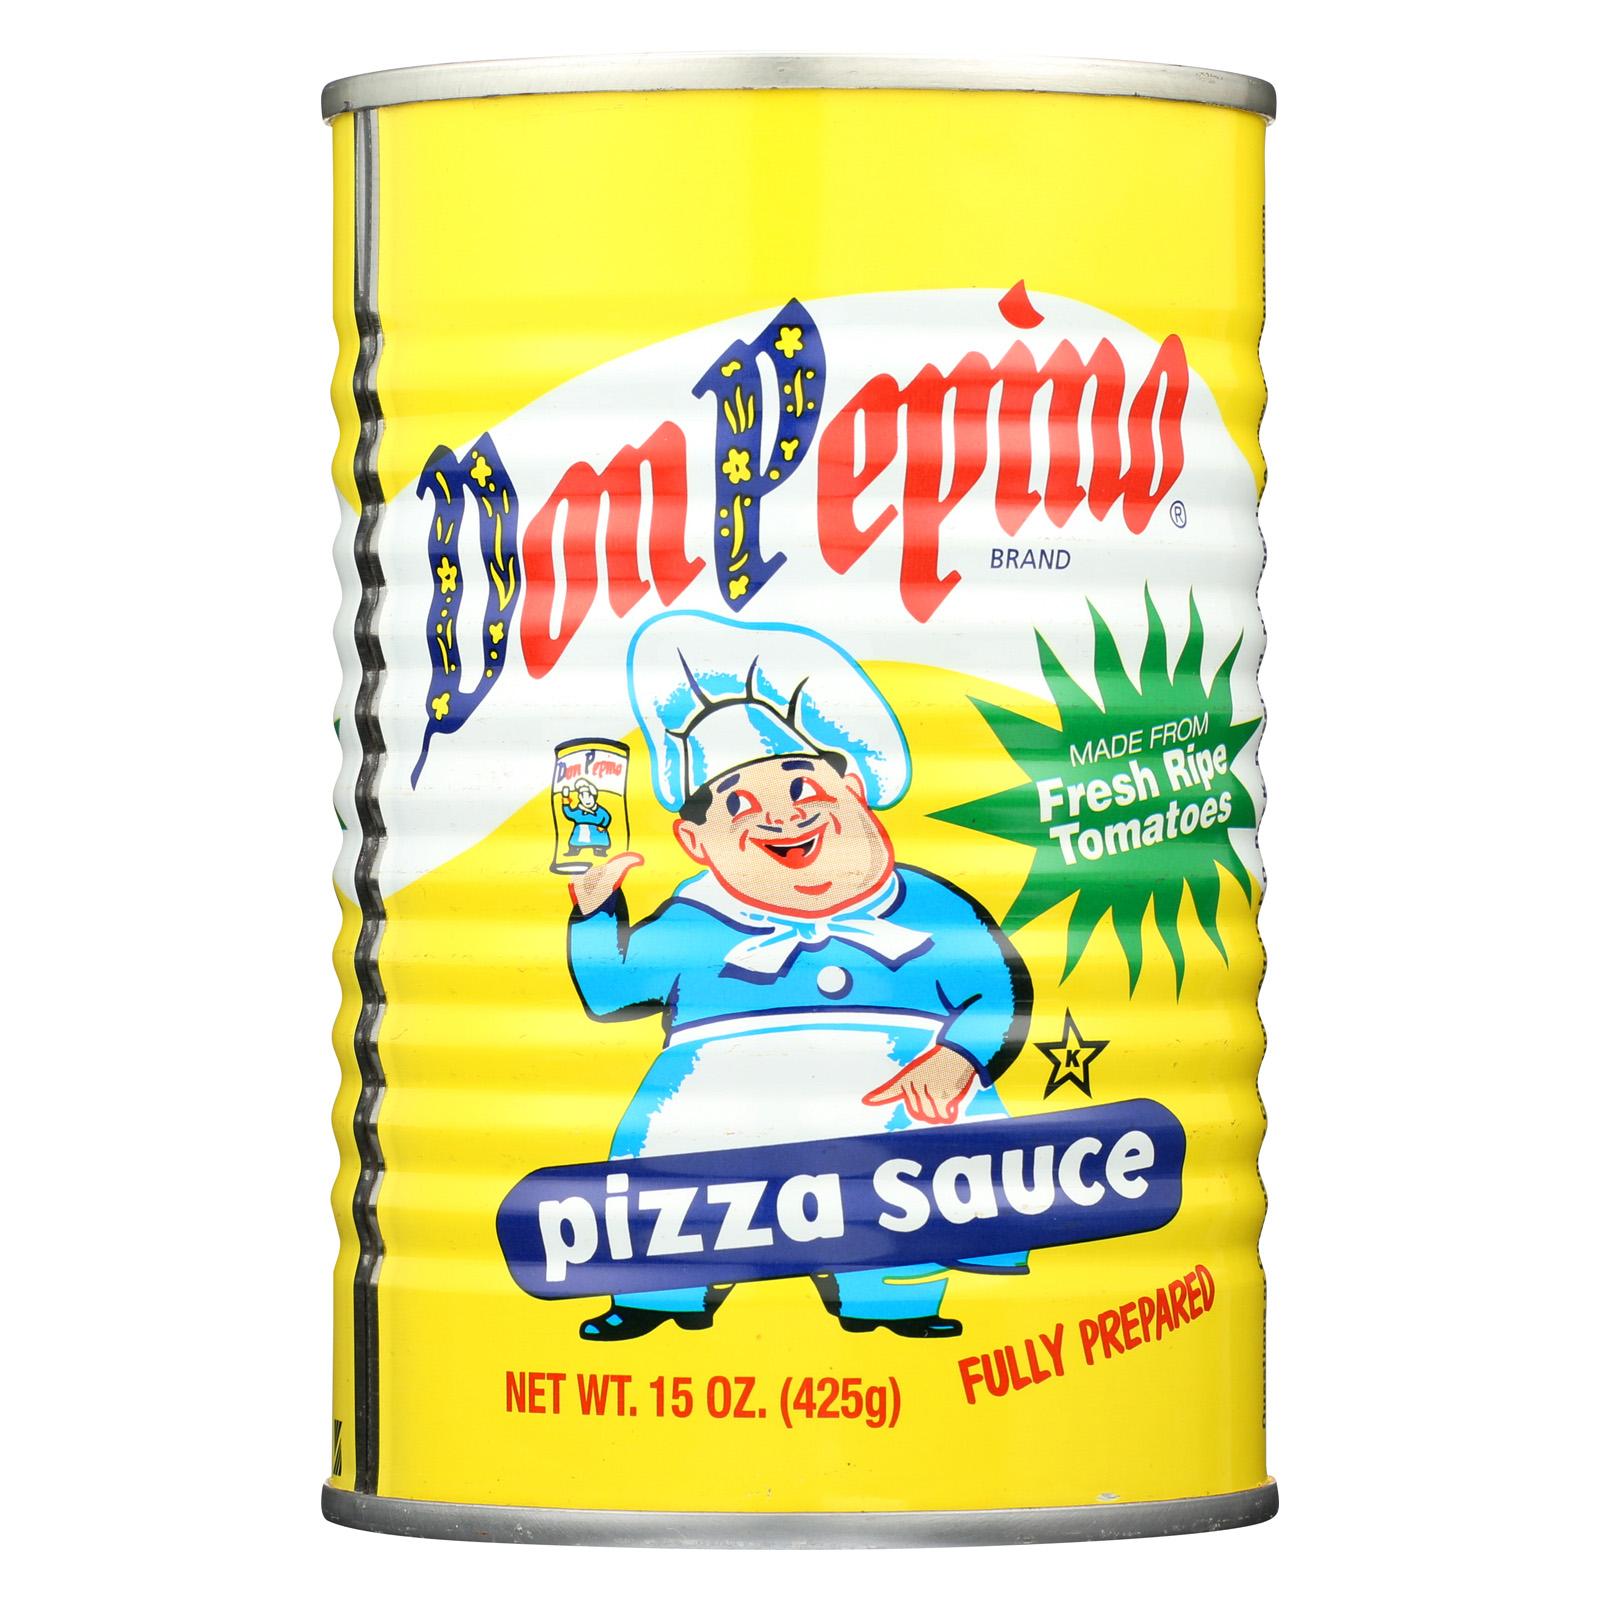 Don Pepino Fully Prepared Pizza Sauce Case of 12 15 oz. by